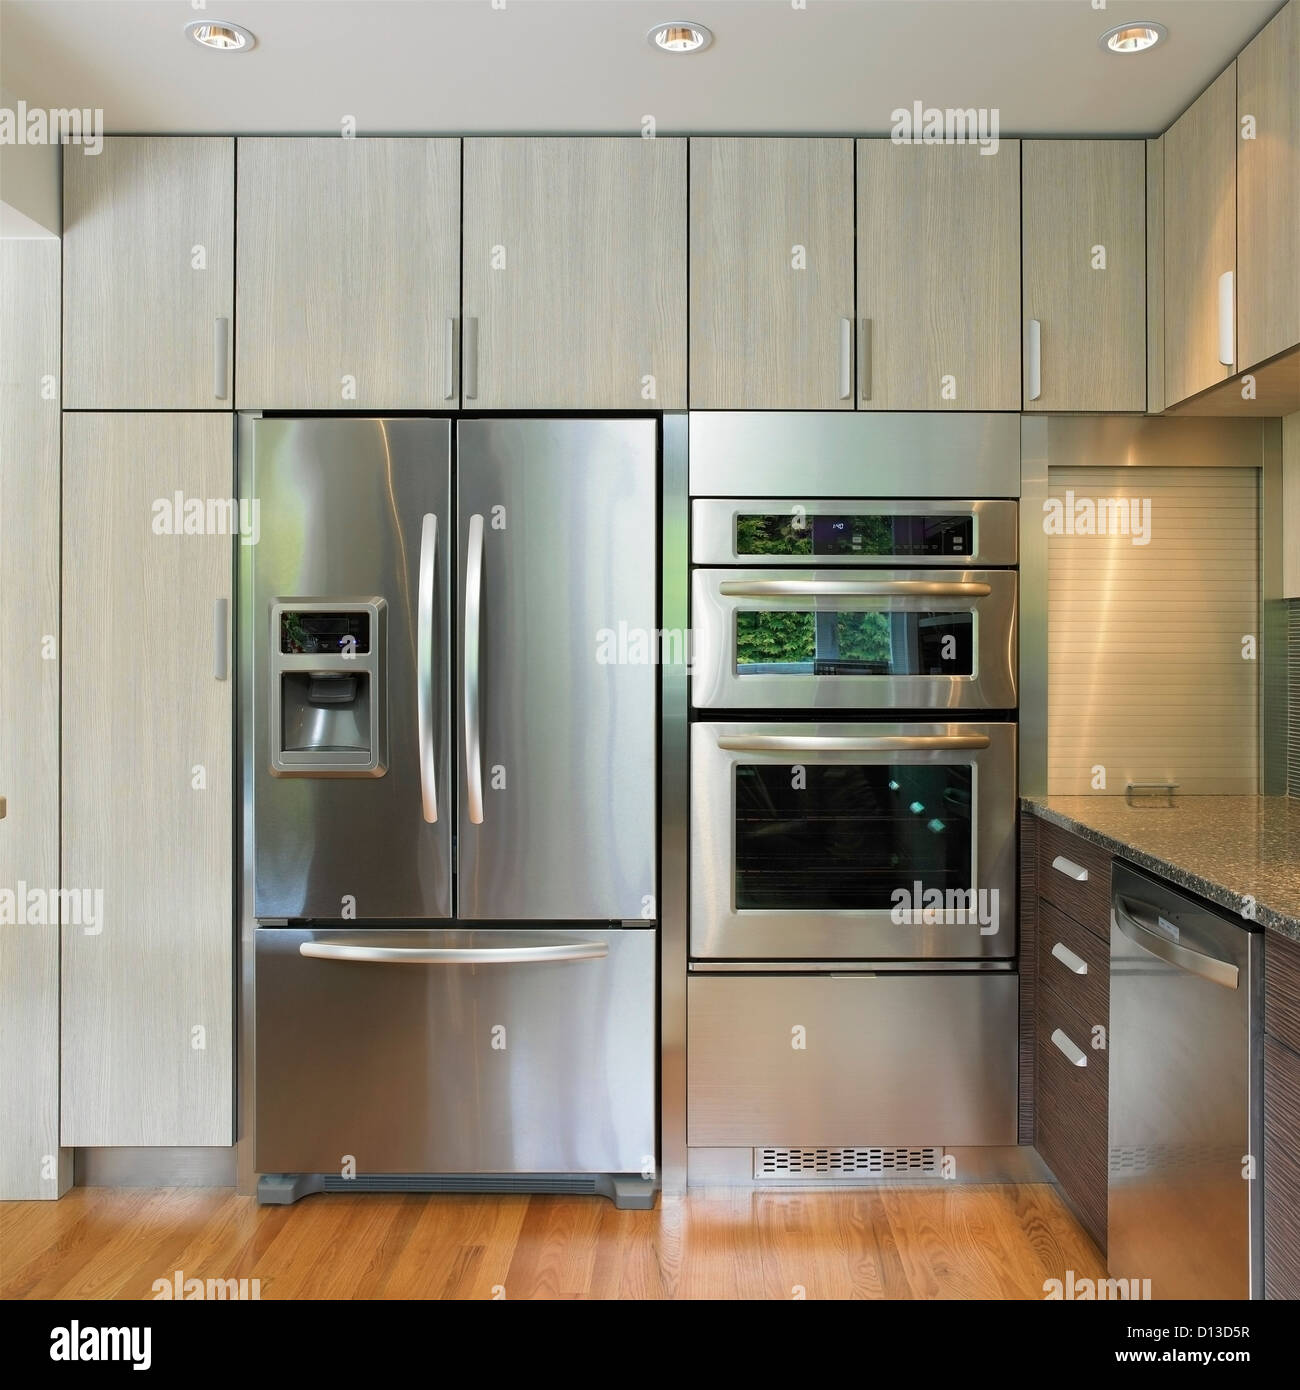 Kitchen wall featuring built in fridge and wall oven victoria vancouver island british columbia canada